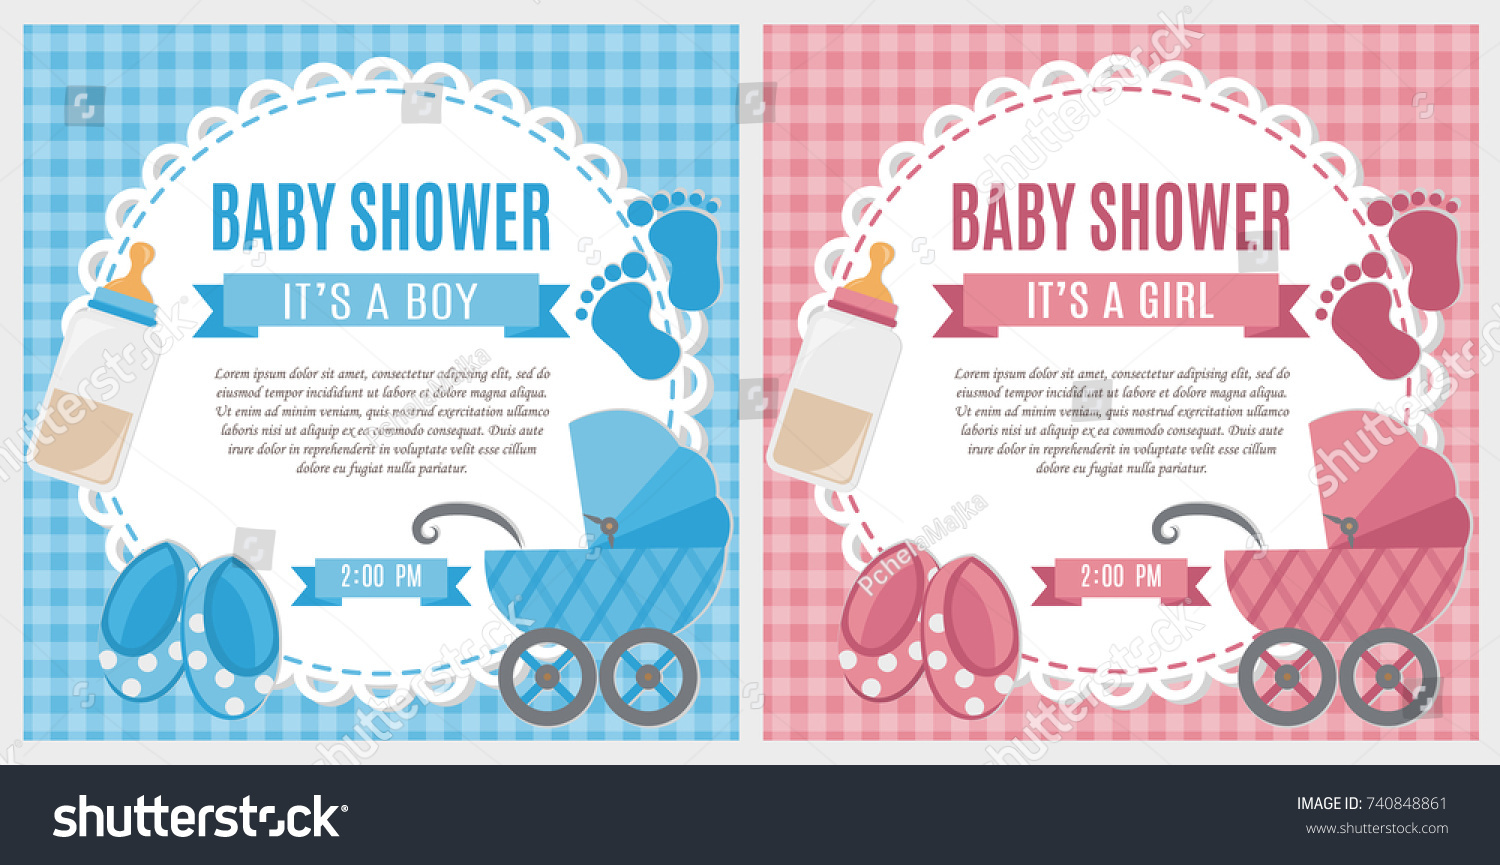 Set baby shower invitation card baby stock vector royalty free set of baby shower invitation card baby frame with stroller and stickers on striped background filmwisefo